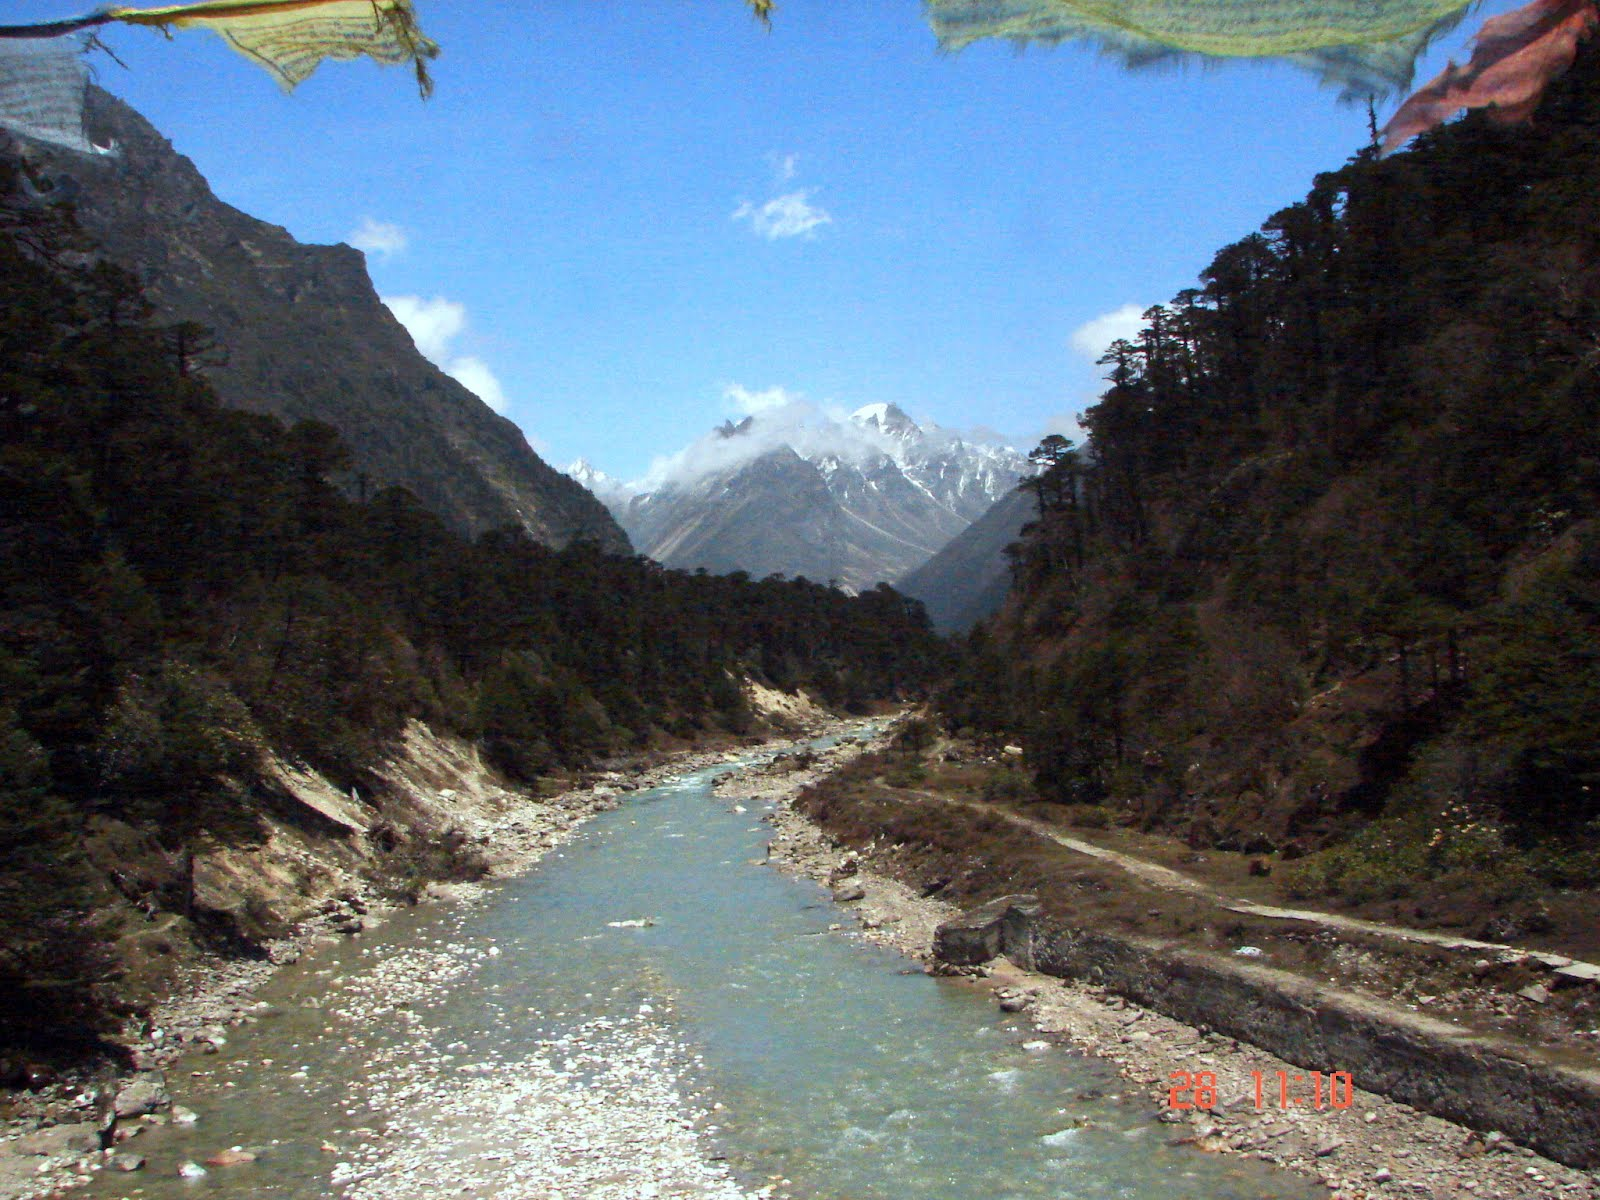 Yumthang Hot Springs Yumthang Valley, Dream Destinations: Shingba Rhododendron Sanctuary Sikkim